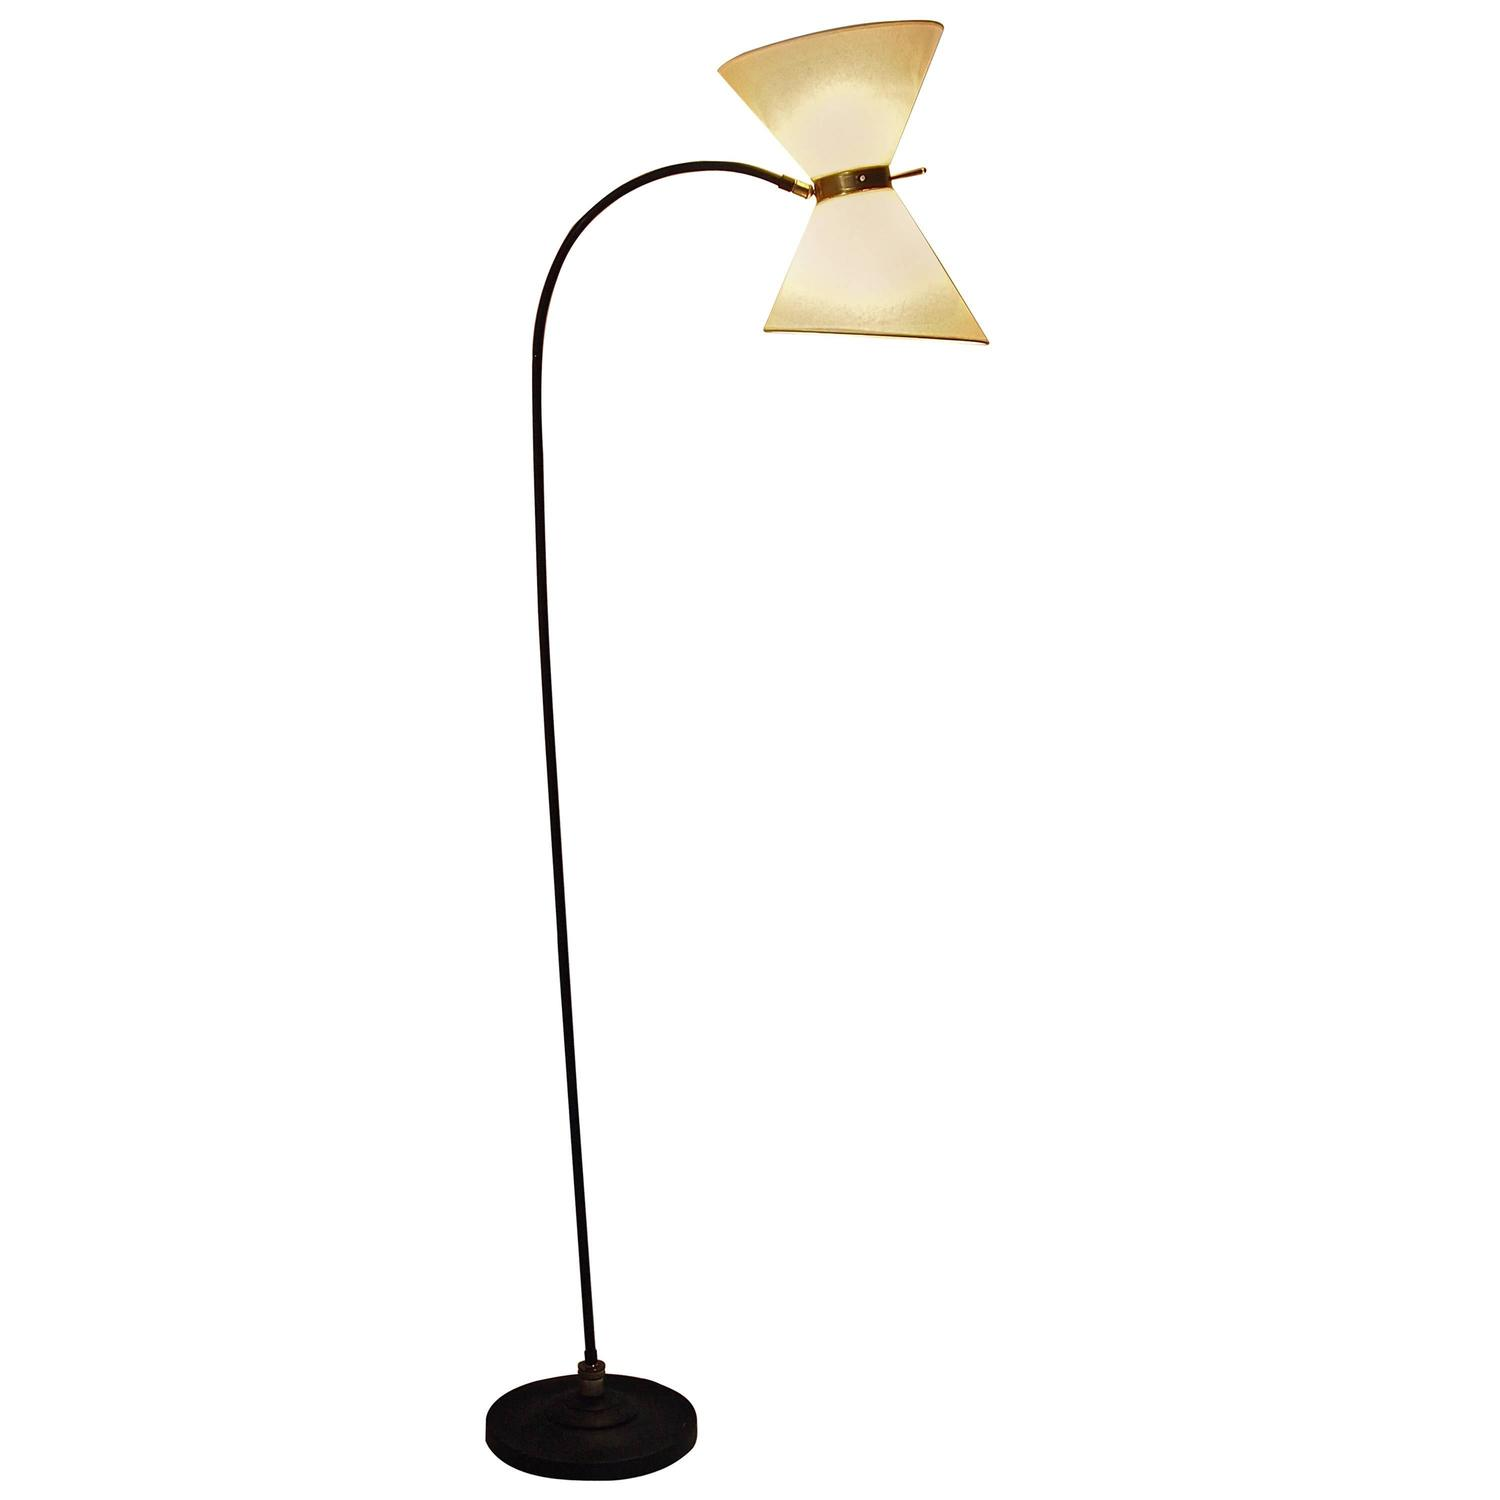 Ball mounted 1950s monix edition floor lamp at 1stdibs for 1950 floor lamp